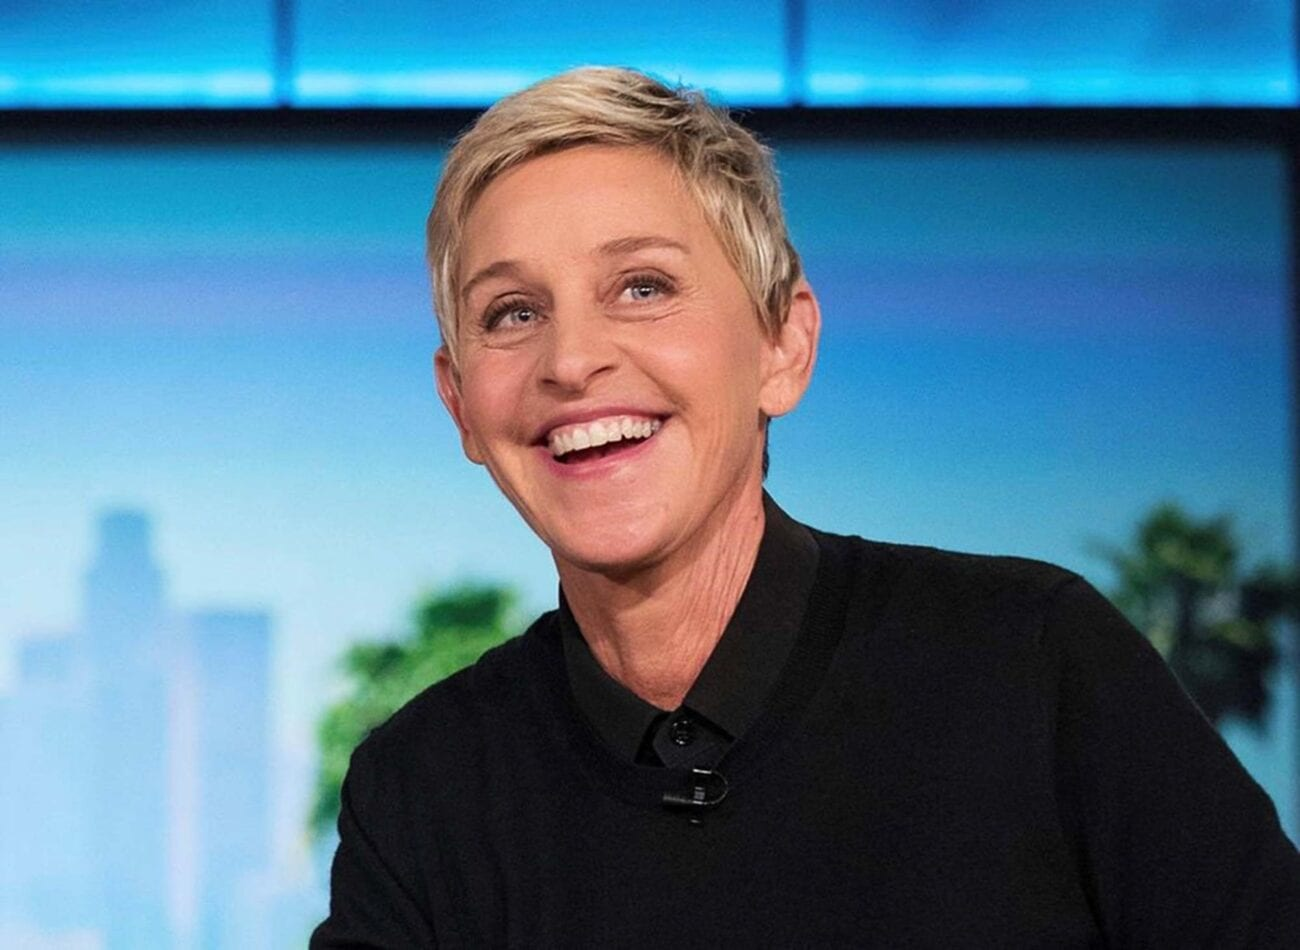 No one can deny that Ellen DeGeneres is one of the biggest LGBTQ icons. However, her net worth has been impacted greatly. Here's why.